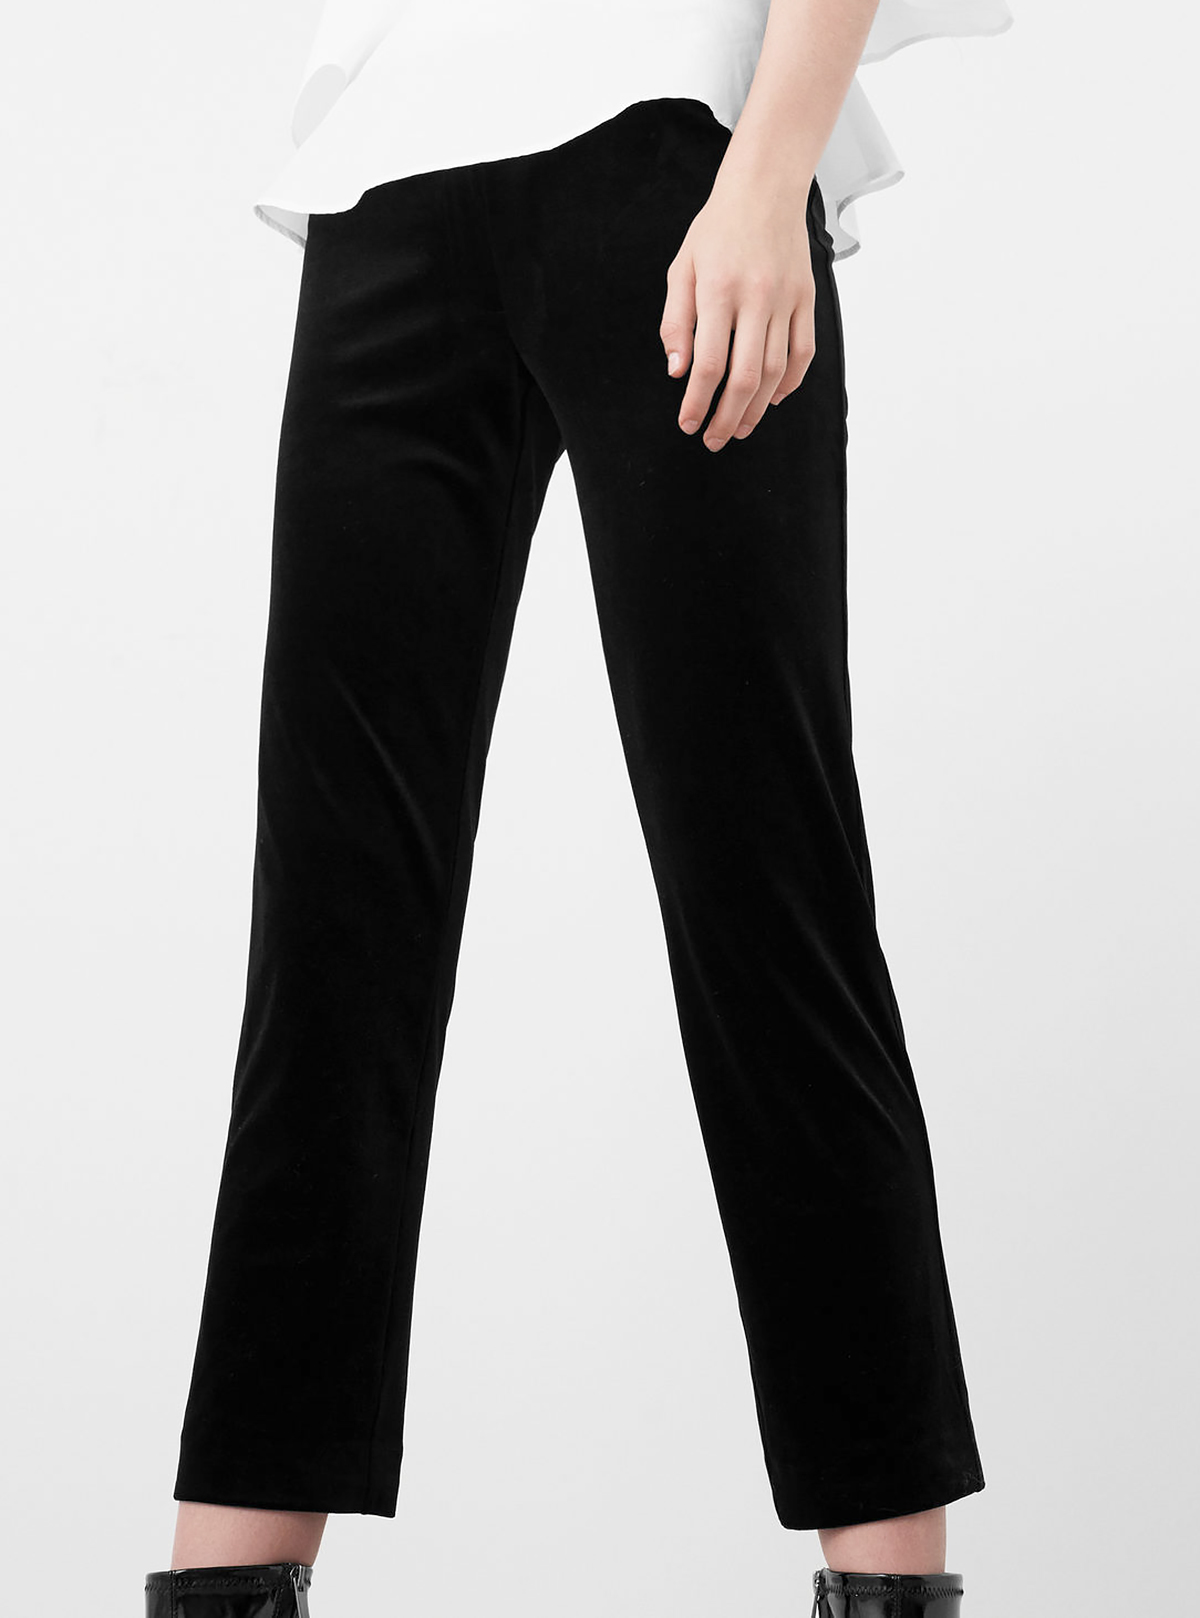 Mango black velvet trousers